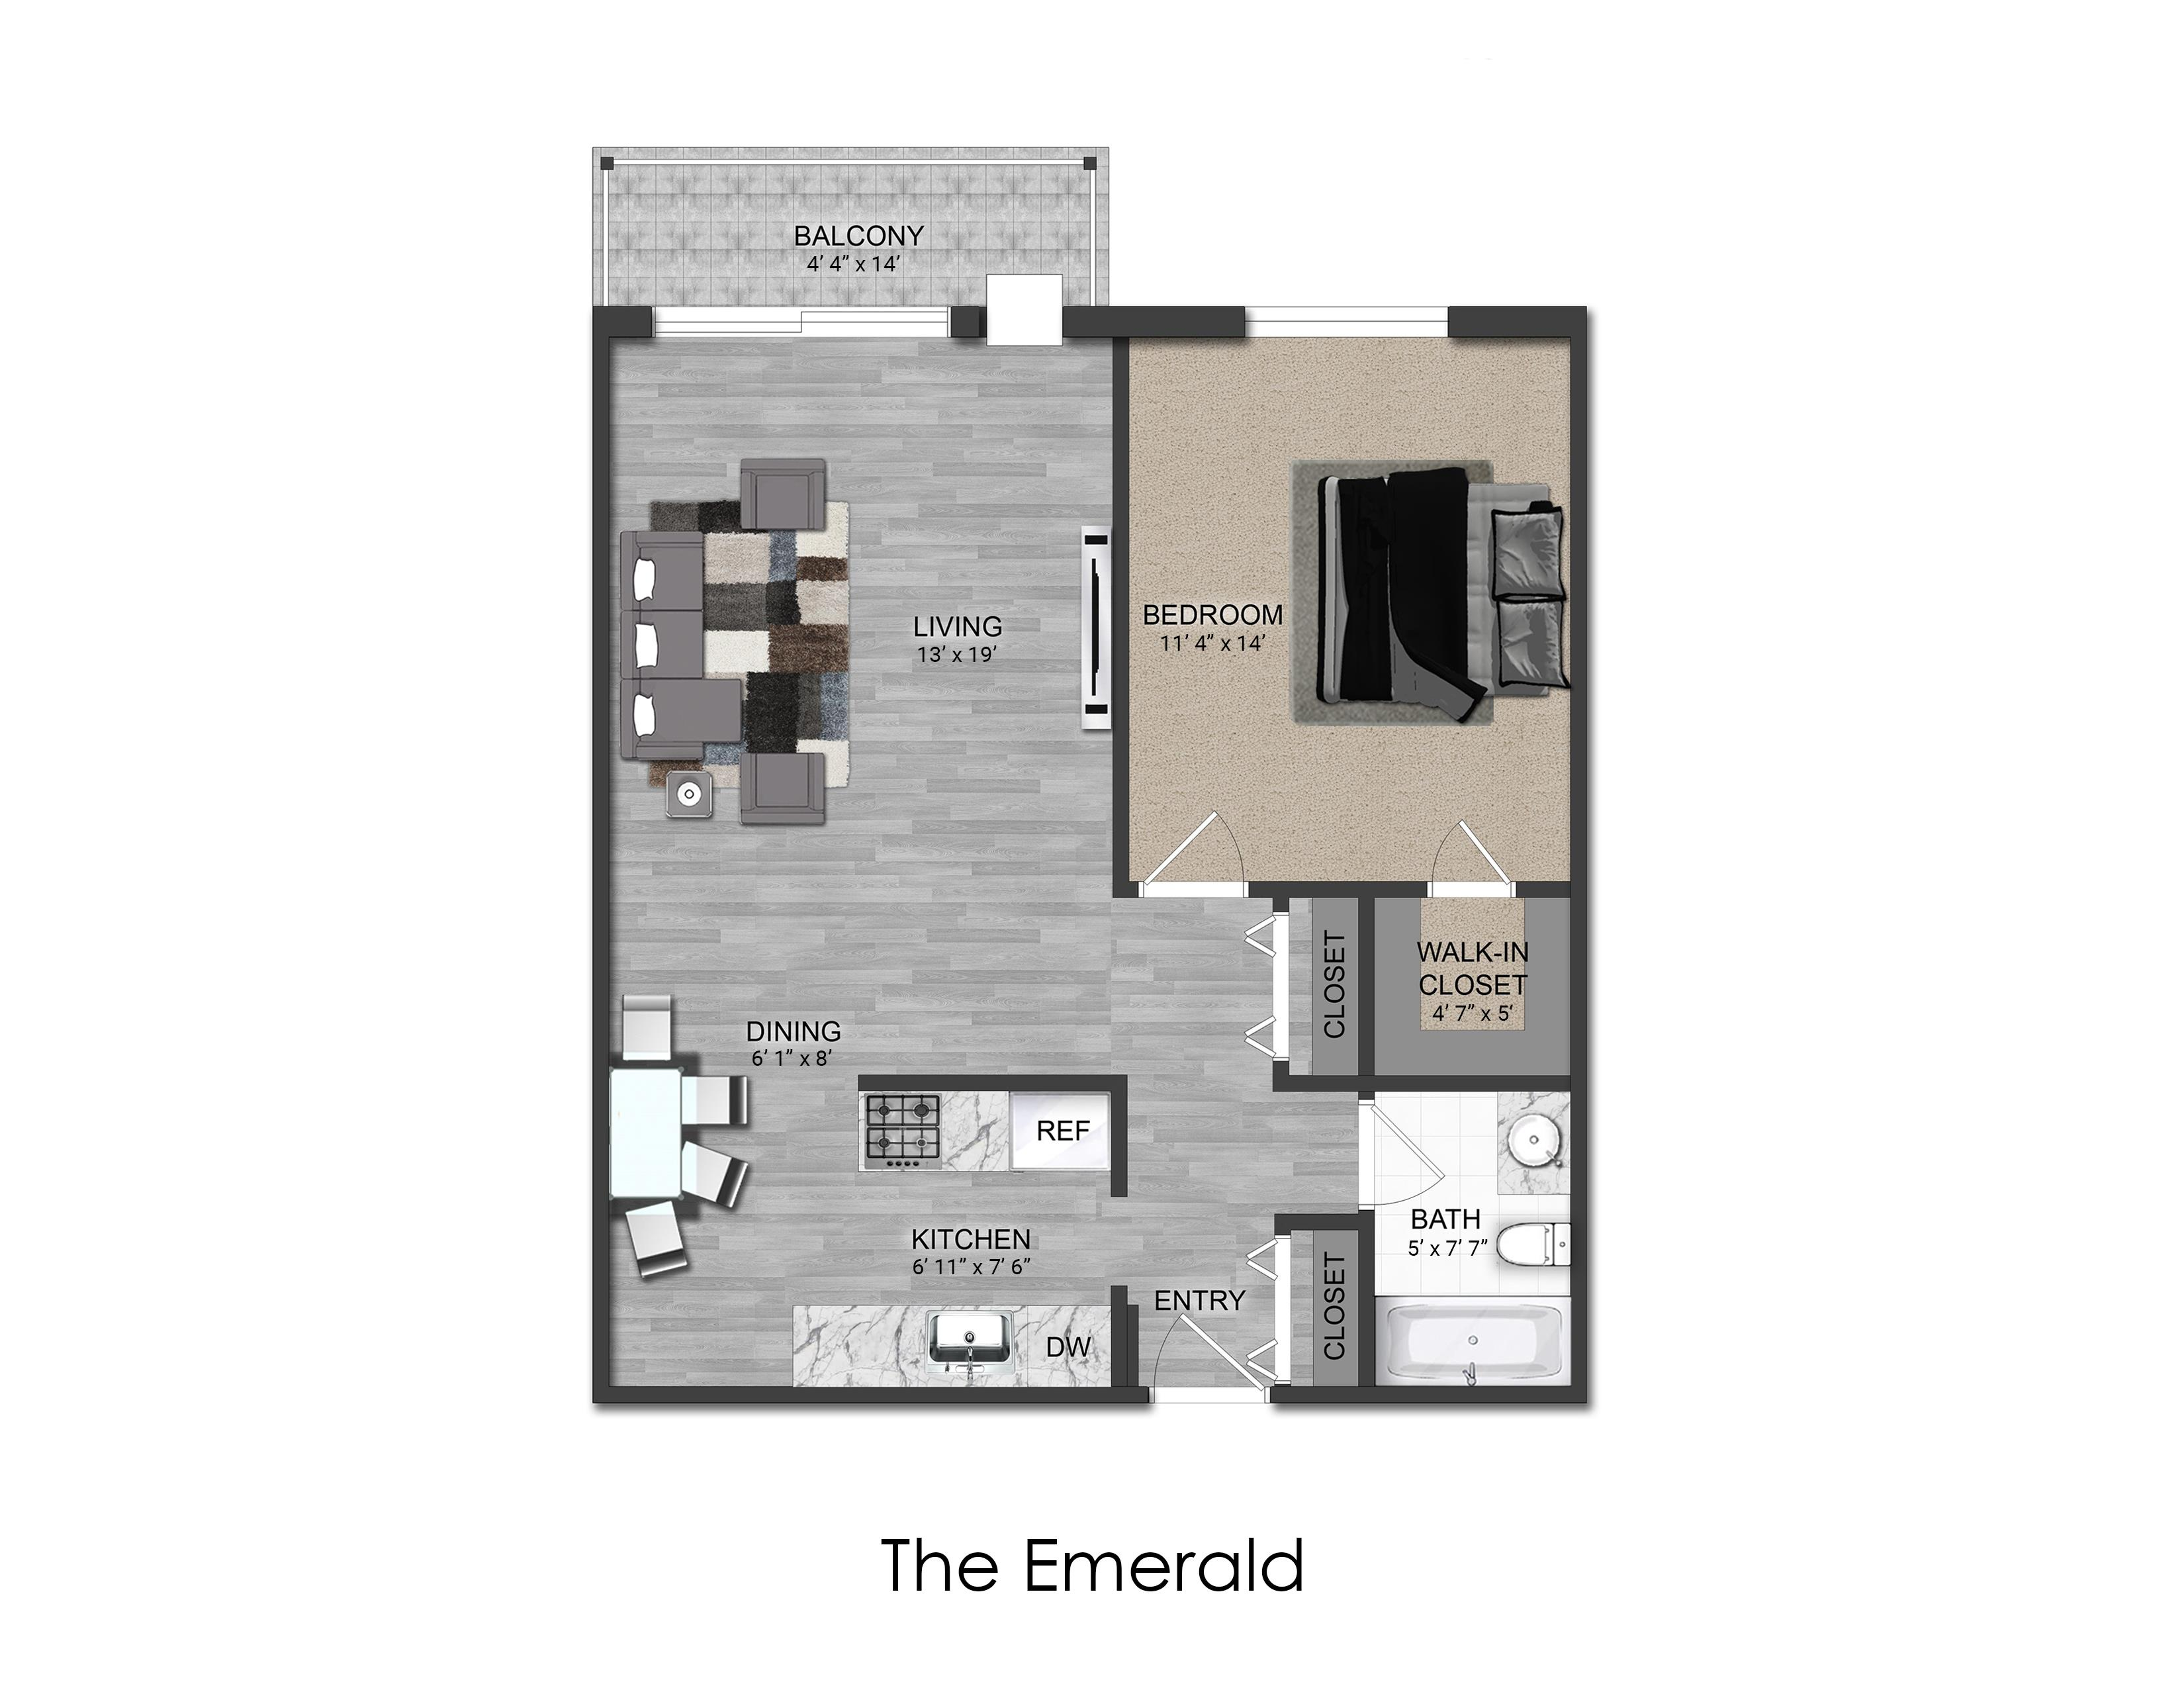 Image of 3020 Sumter Ave N, # 101